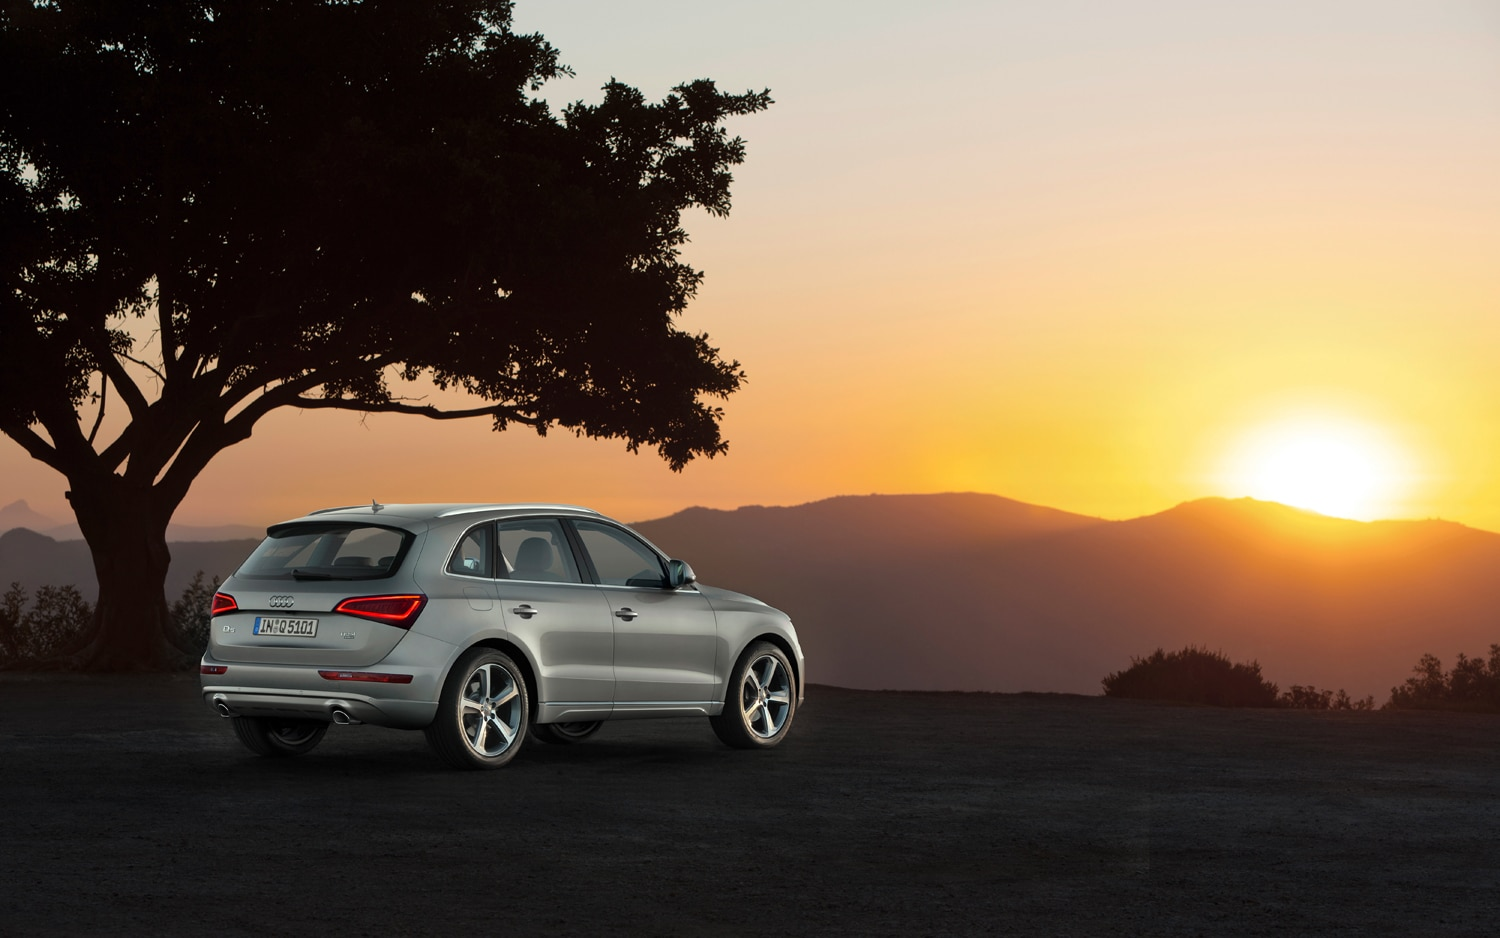 2013 Audi Q5 Rear Three Quarter